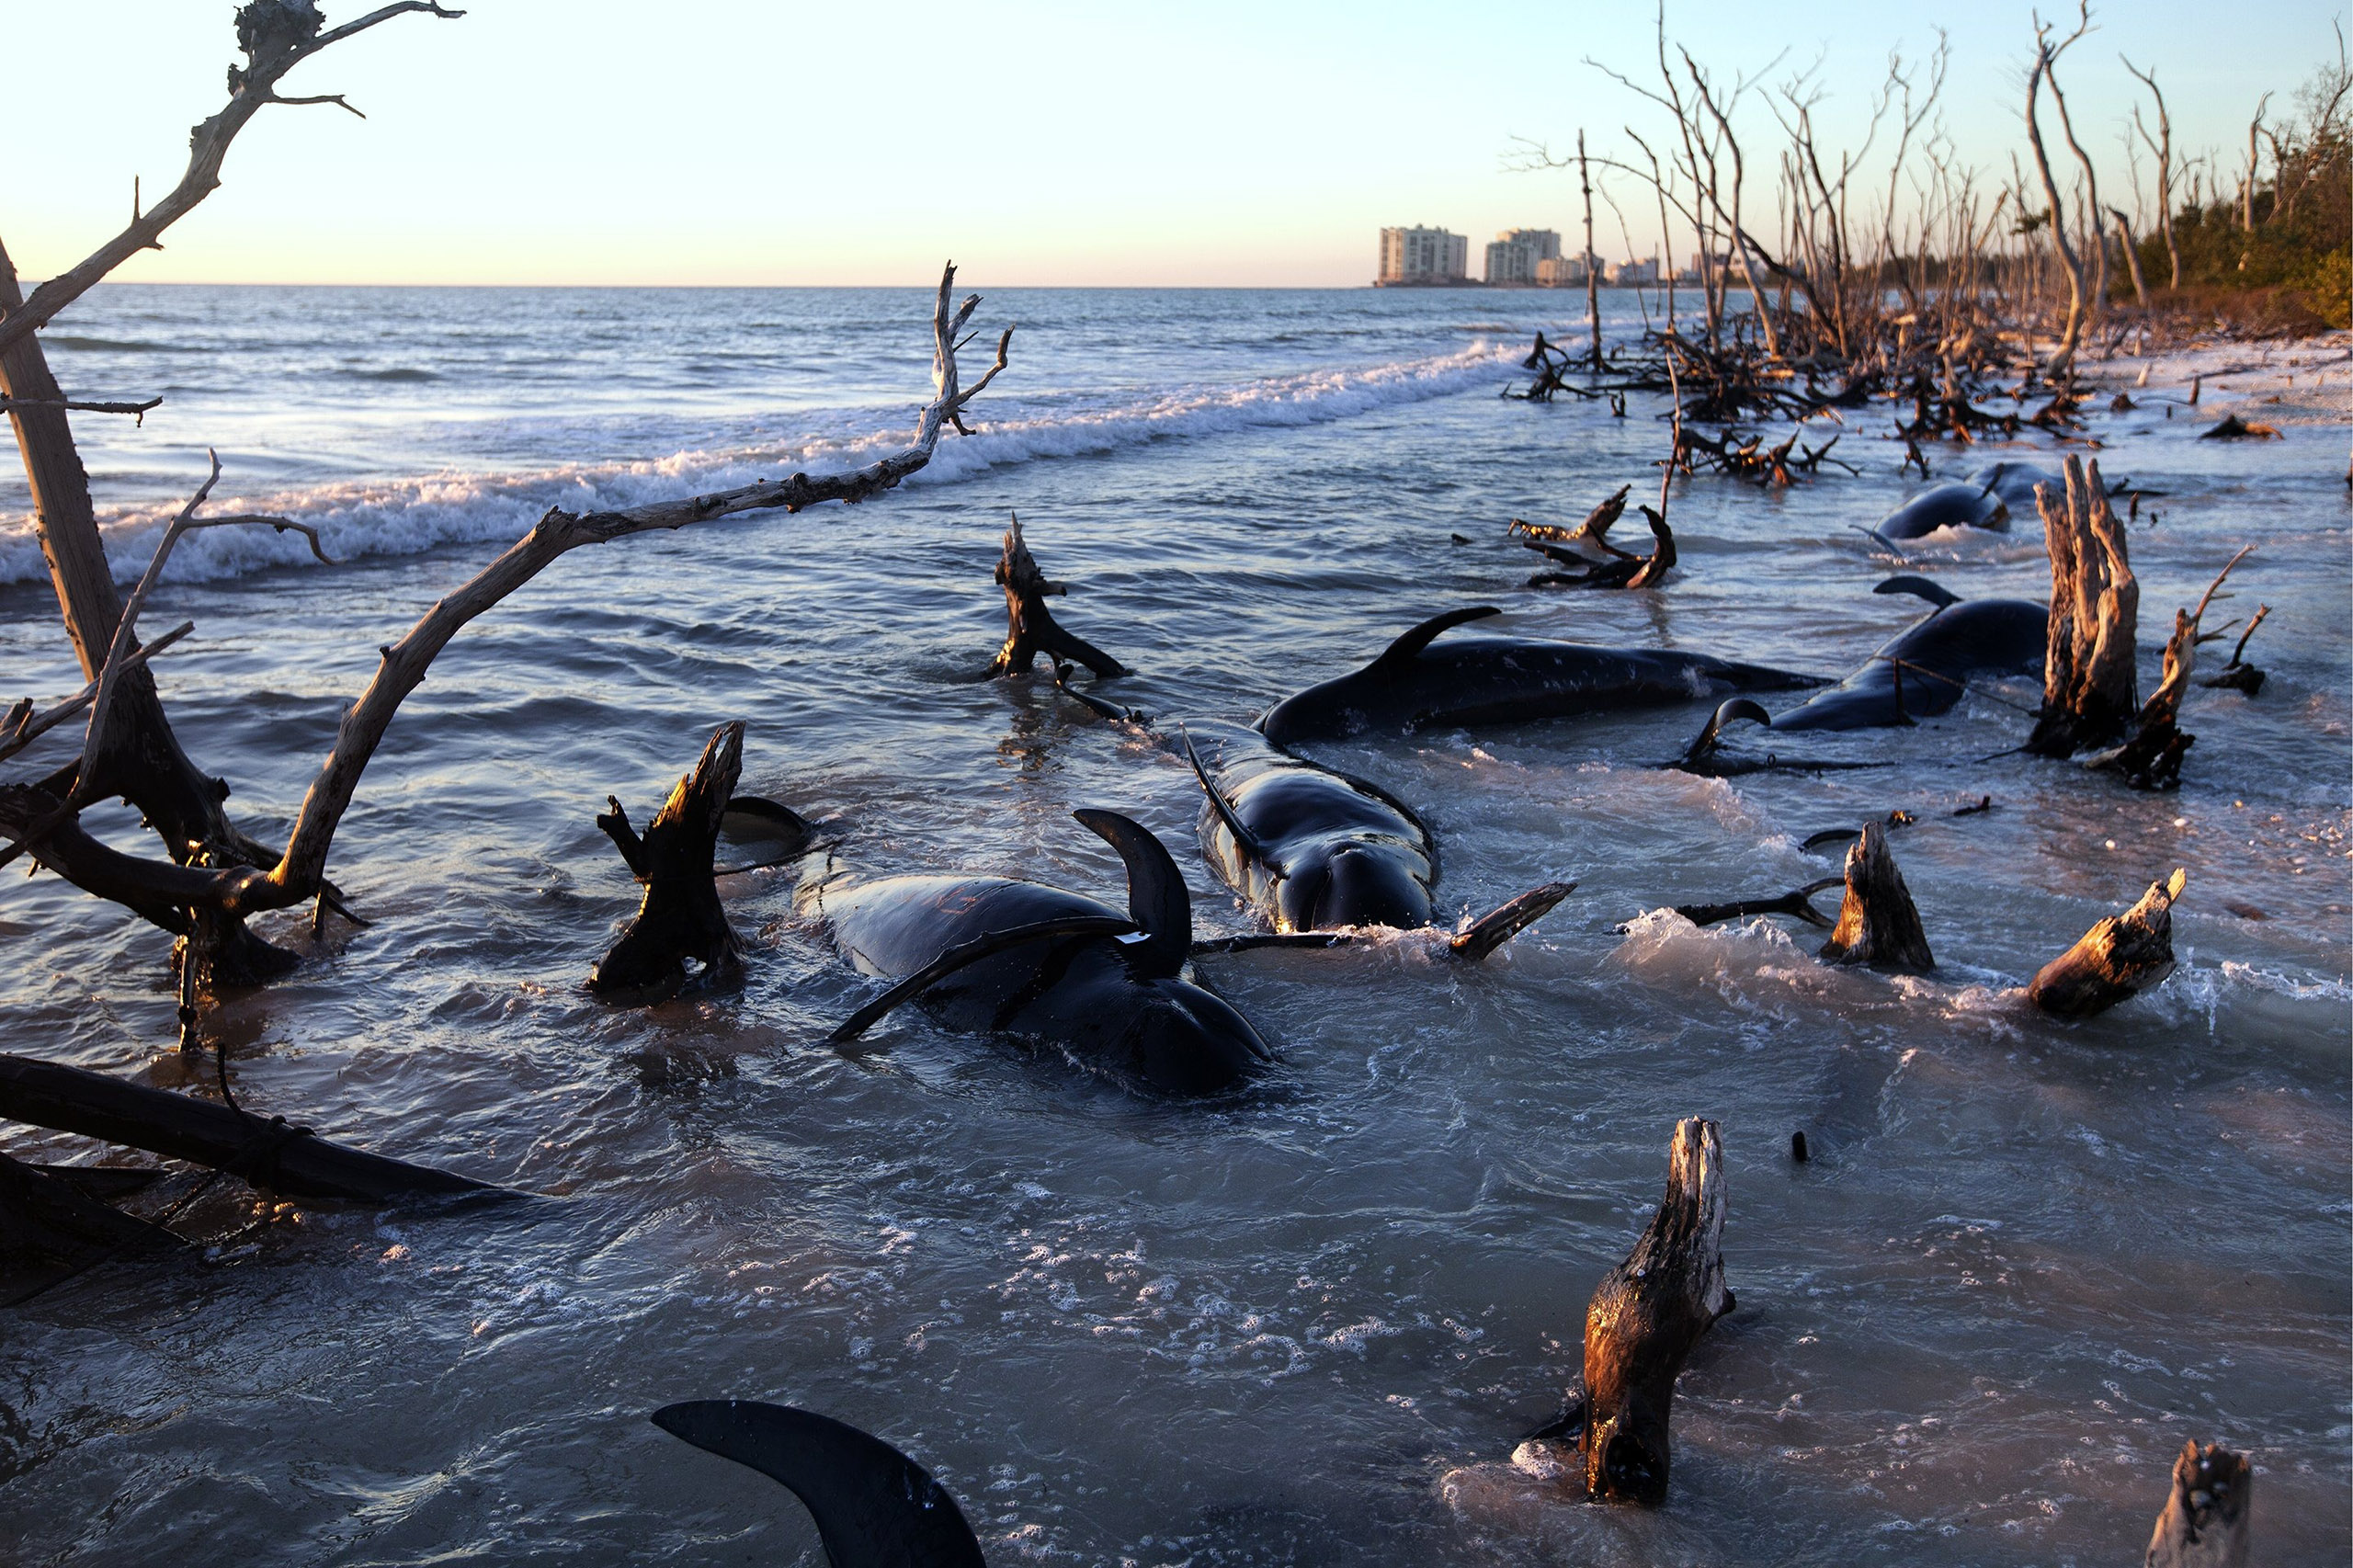 Twenty-five pilot whales beached themselves on Kice Island off southwest Florida in 2014. Sickness related to environmental problems can trigger beachings, which are on the rise